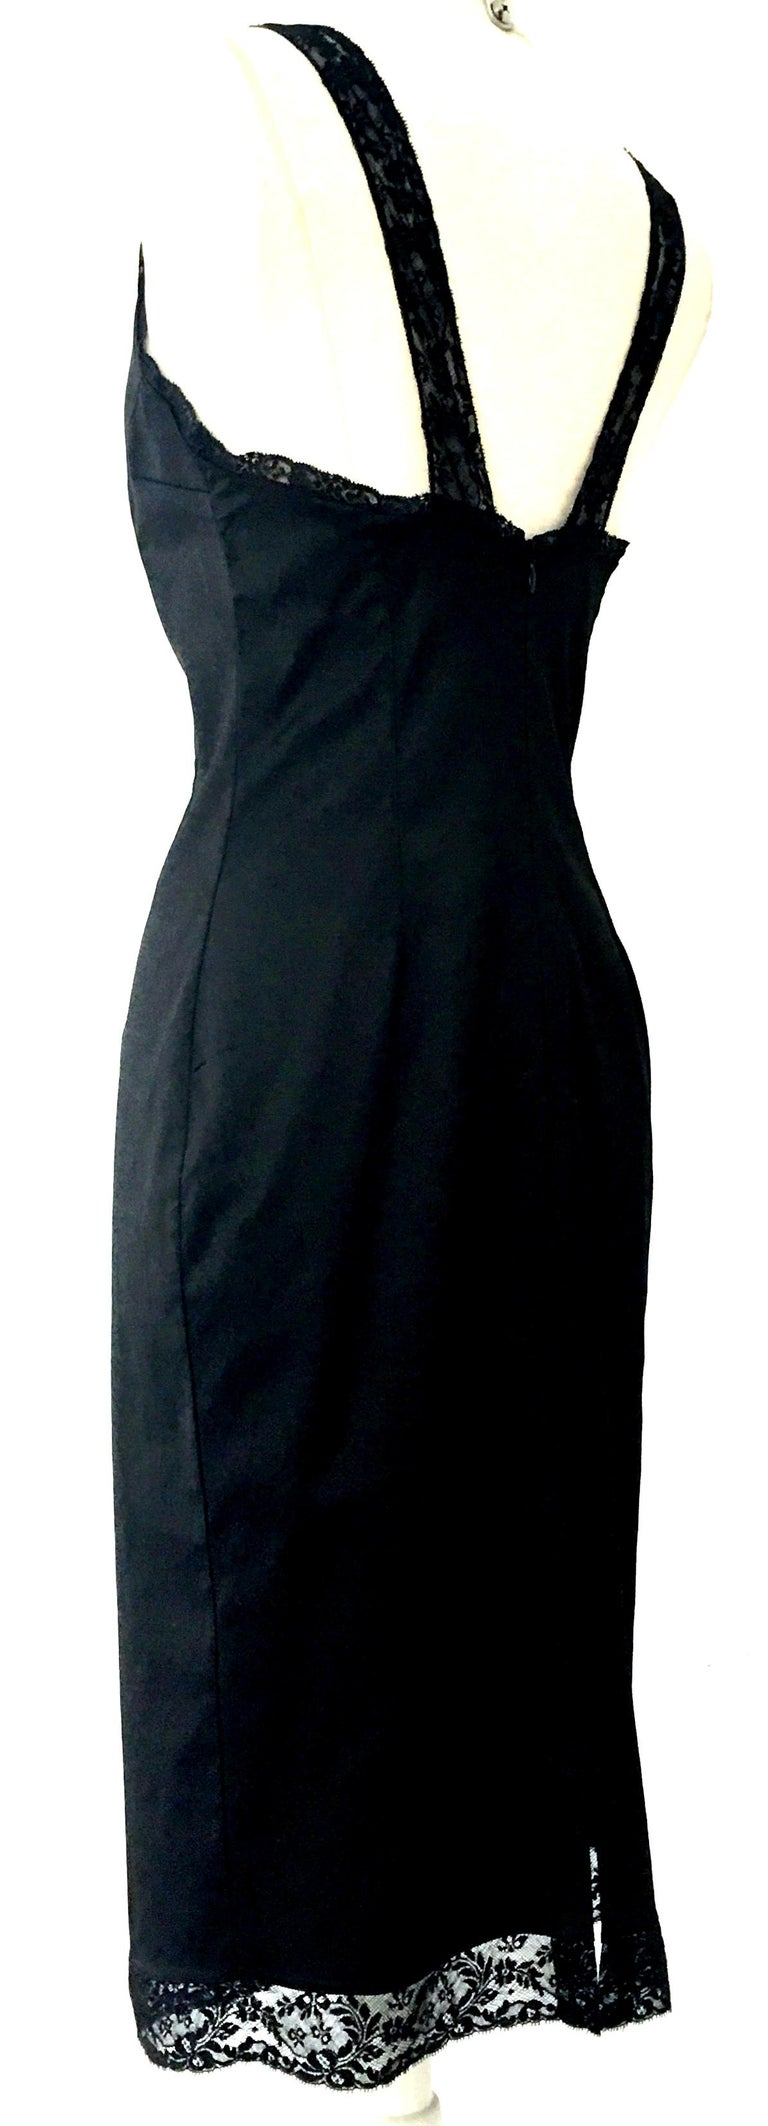 Women's or Men's 90'S Italian  Dolce & Gabbana Black Fitted Slip Style Dress Sz-46 For Sale